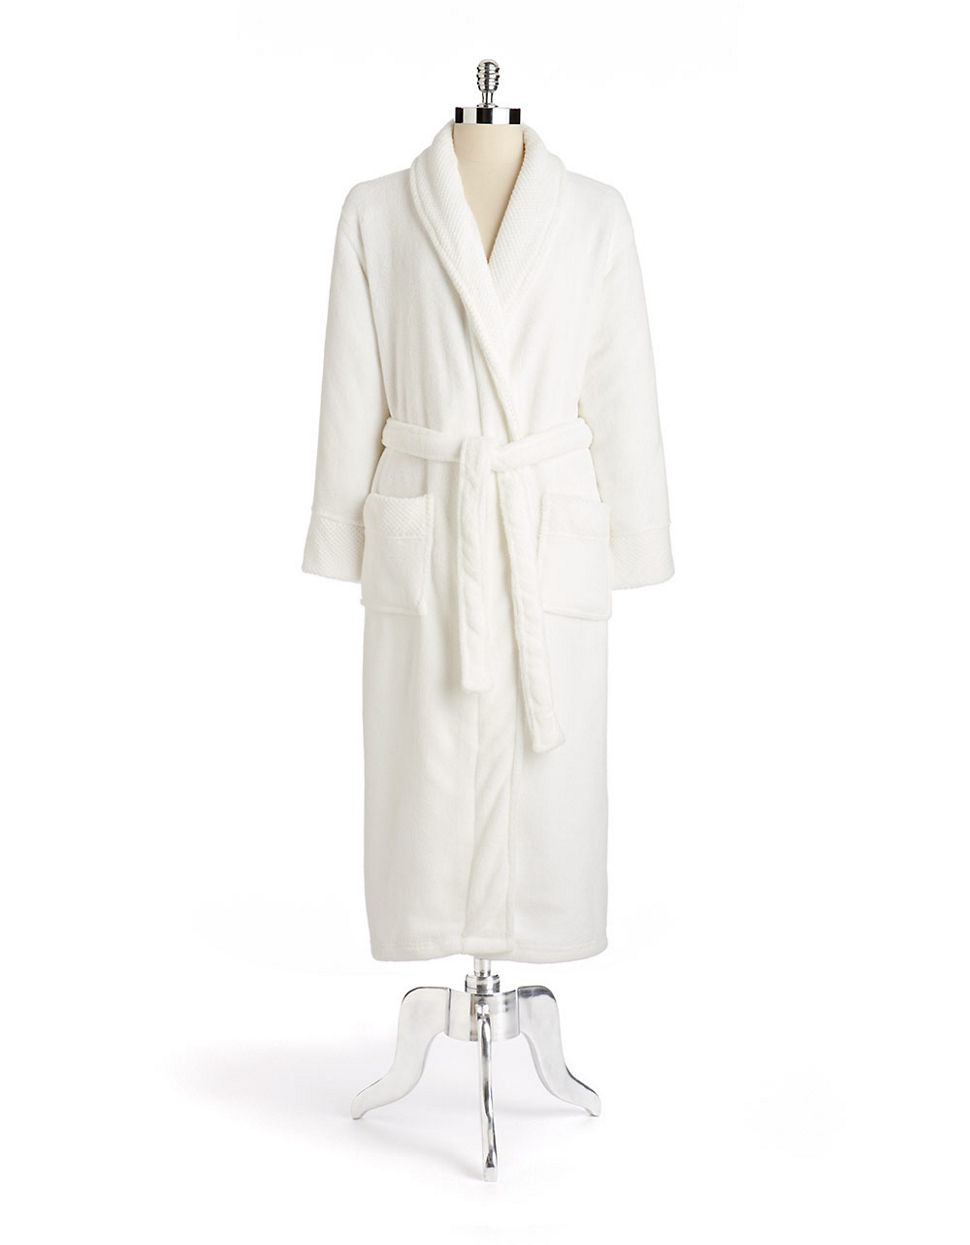 La lingerie Textured Plush Robe white Medium